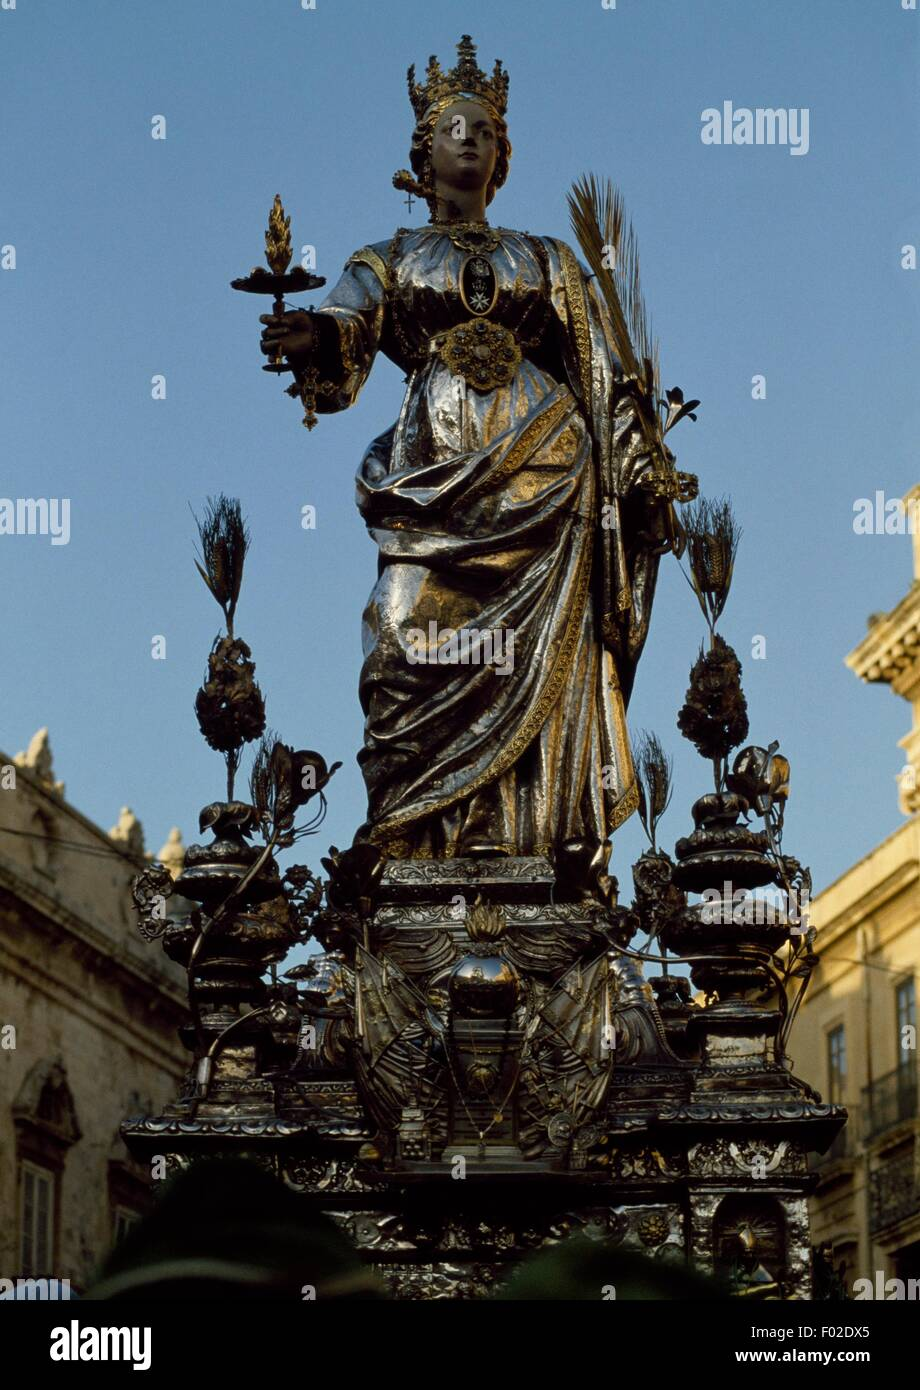 The statue of Saint Lucia carried in procession during the festival dedicated to the Saint, Syracuse, Sicily, Italy. - Stock Image